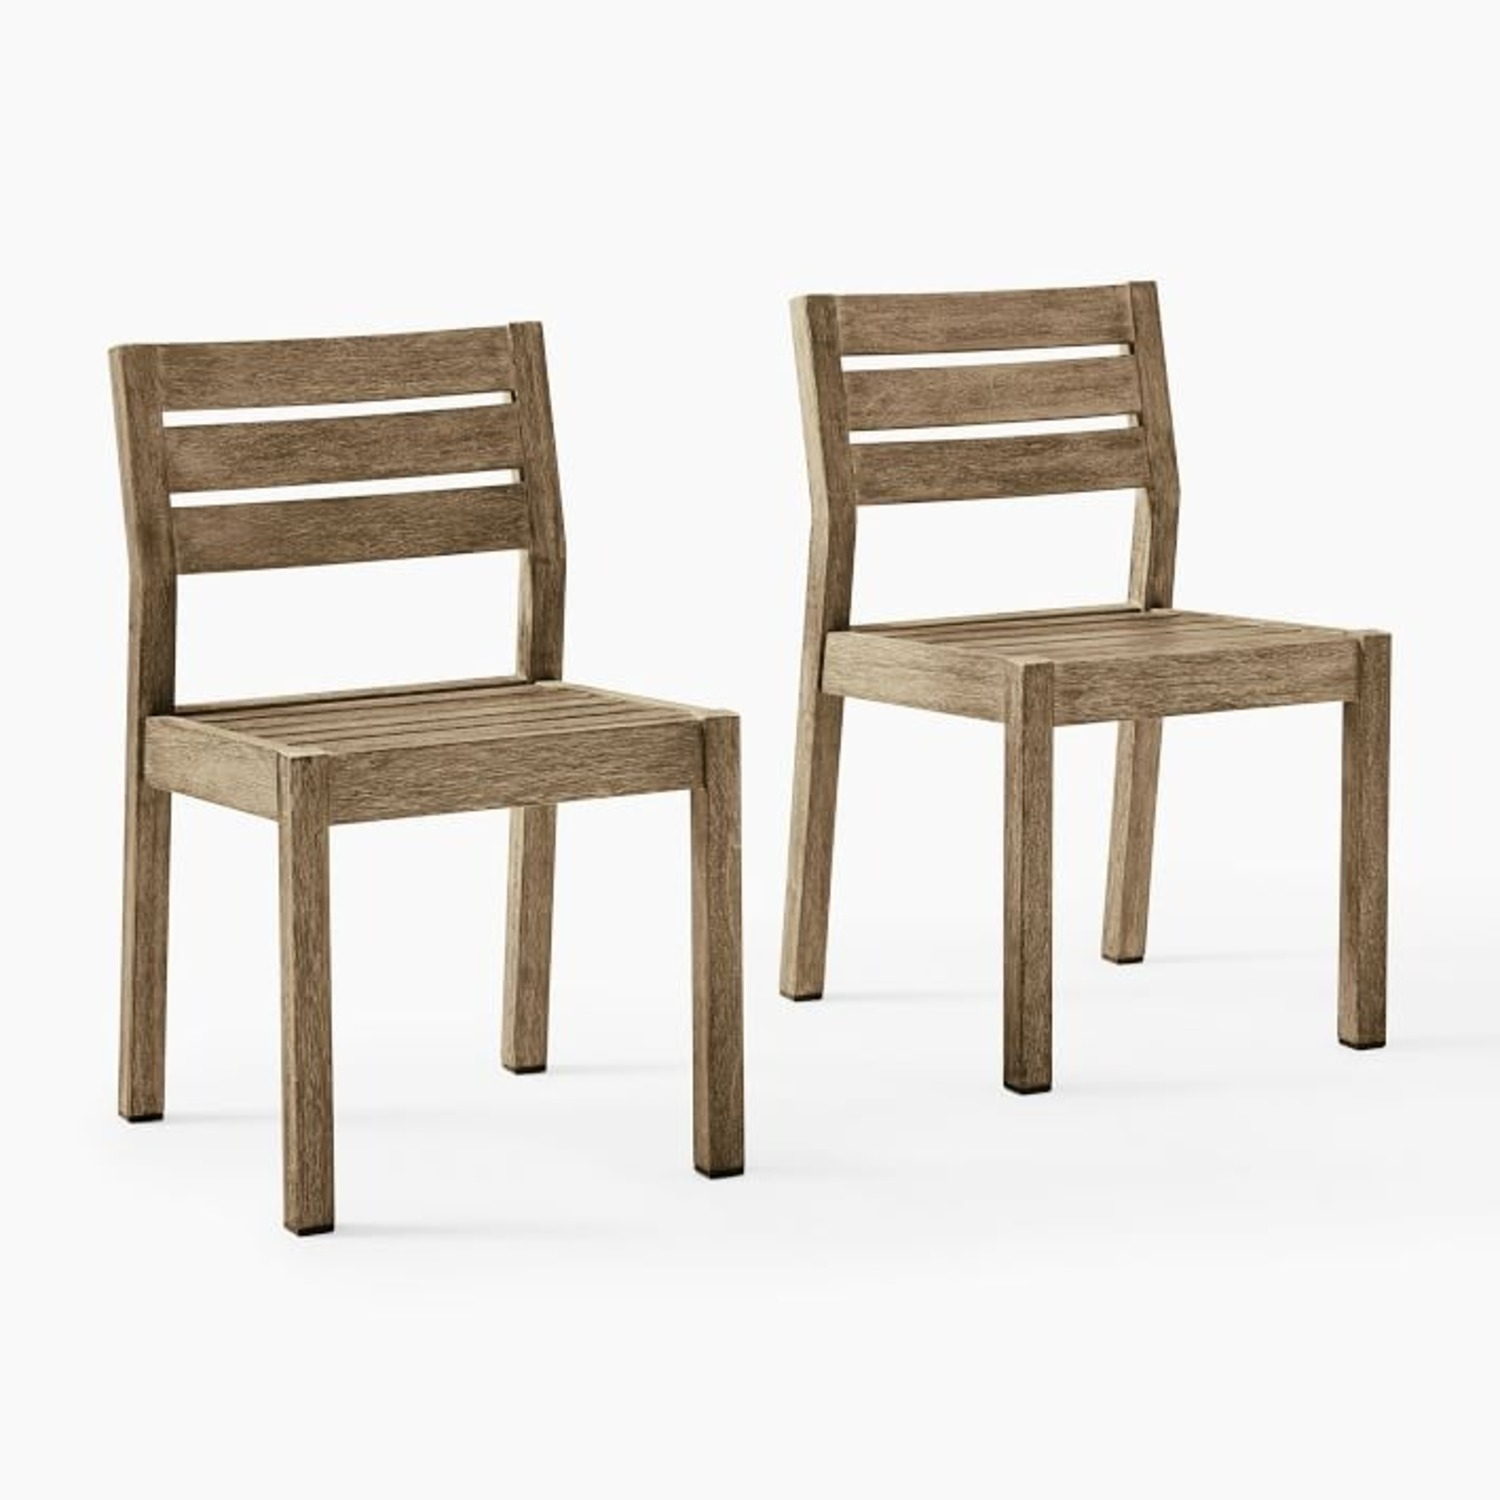 West Elm Portside Outdoor Dining Chair, Set of 2 - image-3